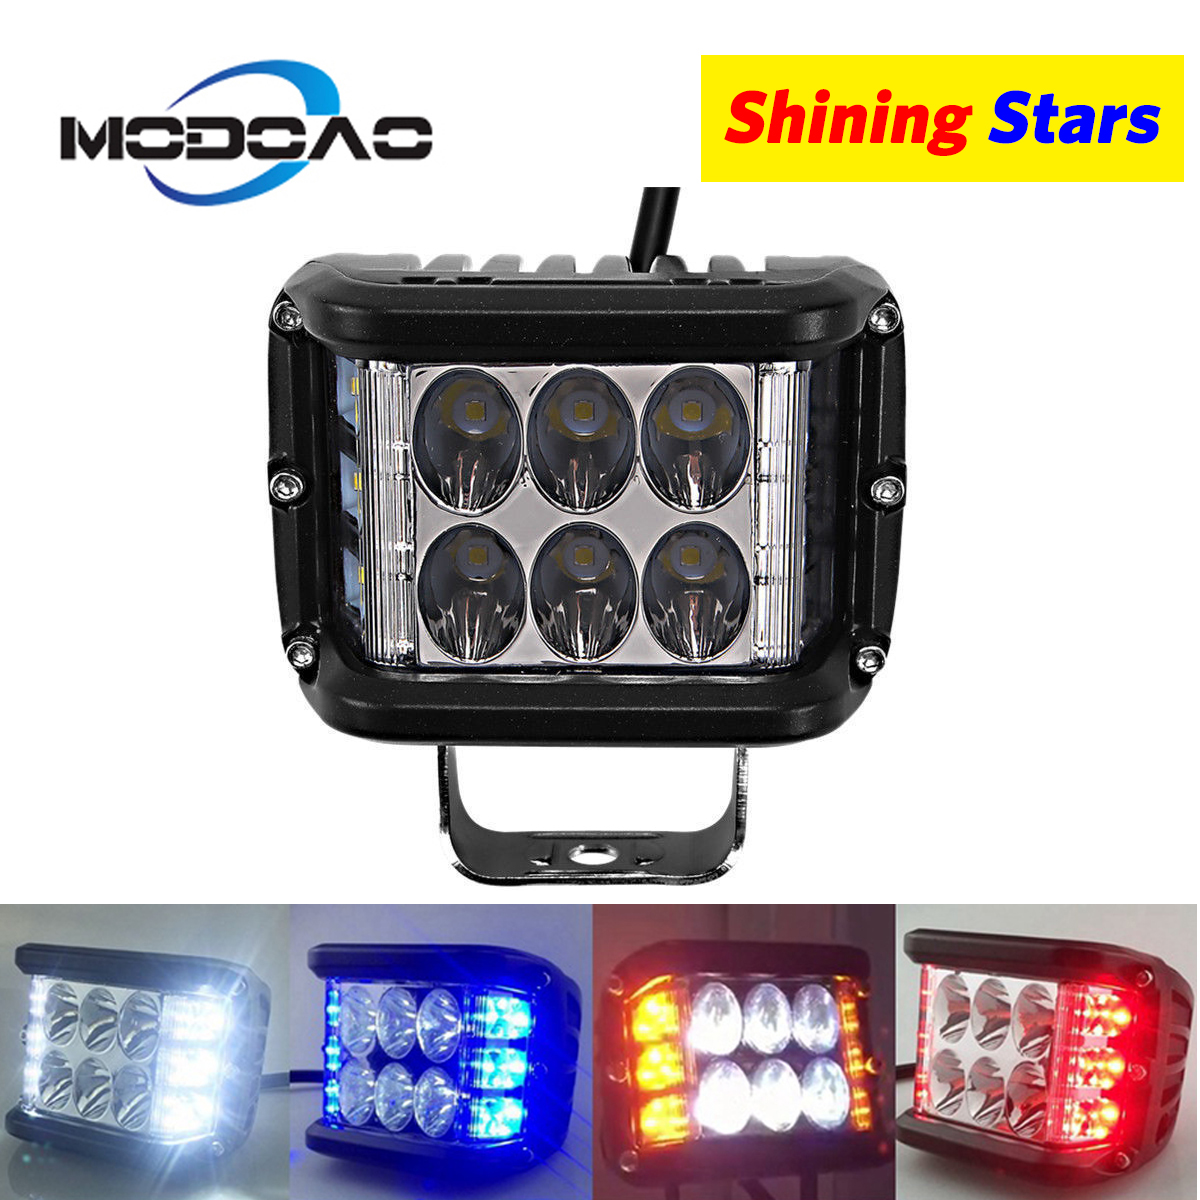 3600lm 45W 3 face car work light can be used for off-road vehicle engineering car ATV white red blue yellow Flash Warning